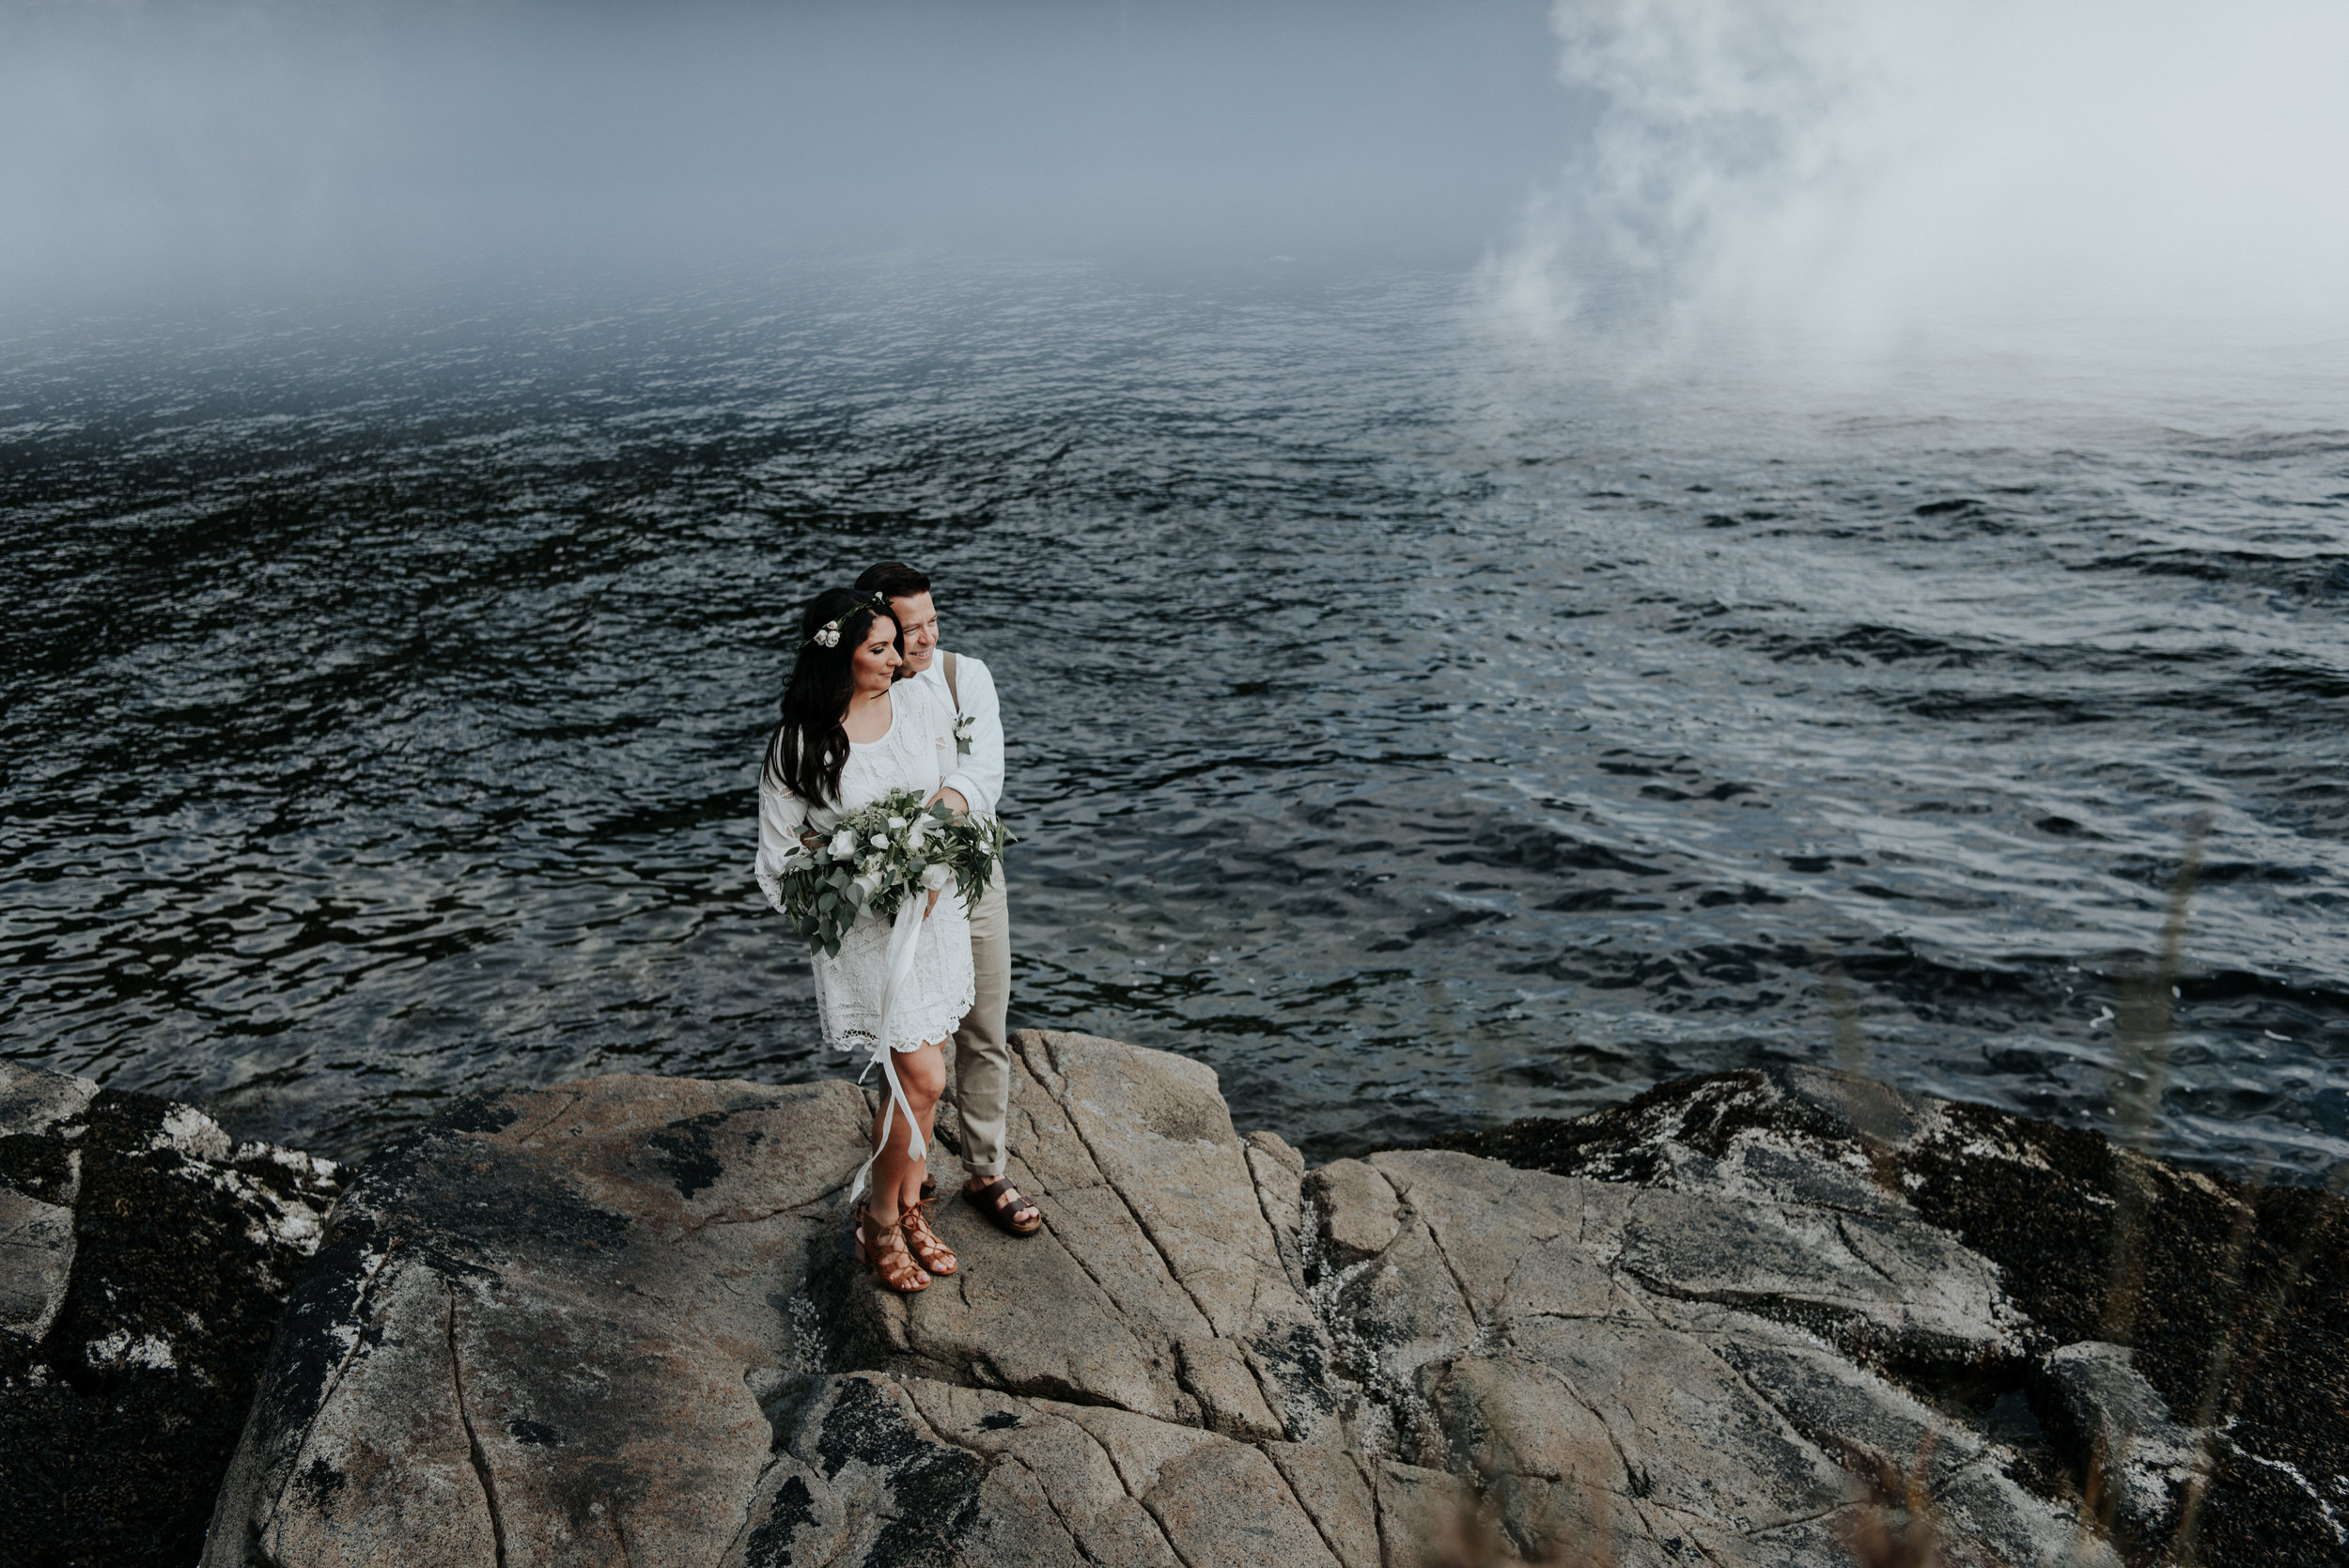 Ashley + Jeff - Rockwater Resort Elopement - Sunshine Coast BC Photographer - Laura Olson Photography-4167.jpg